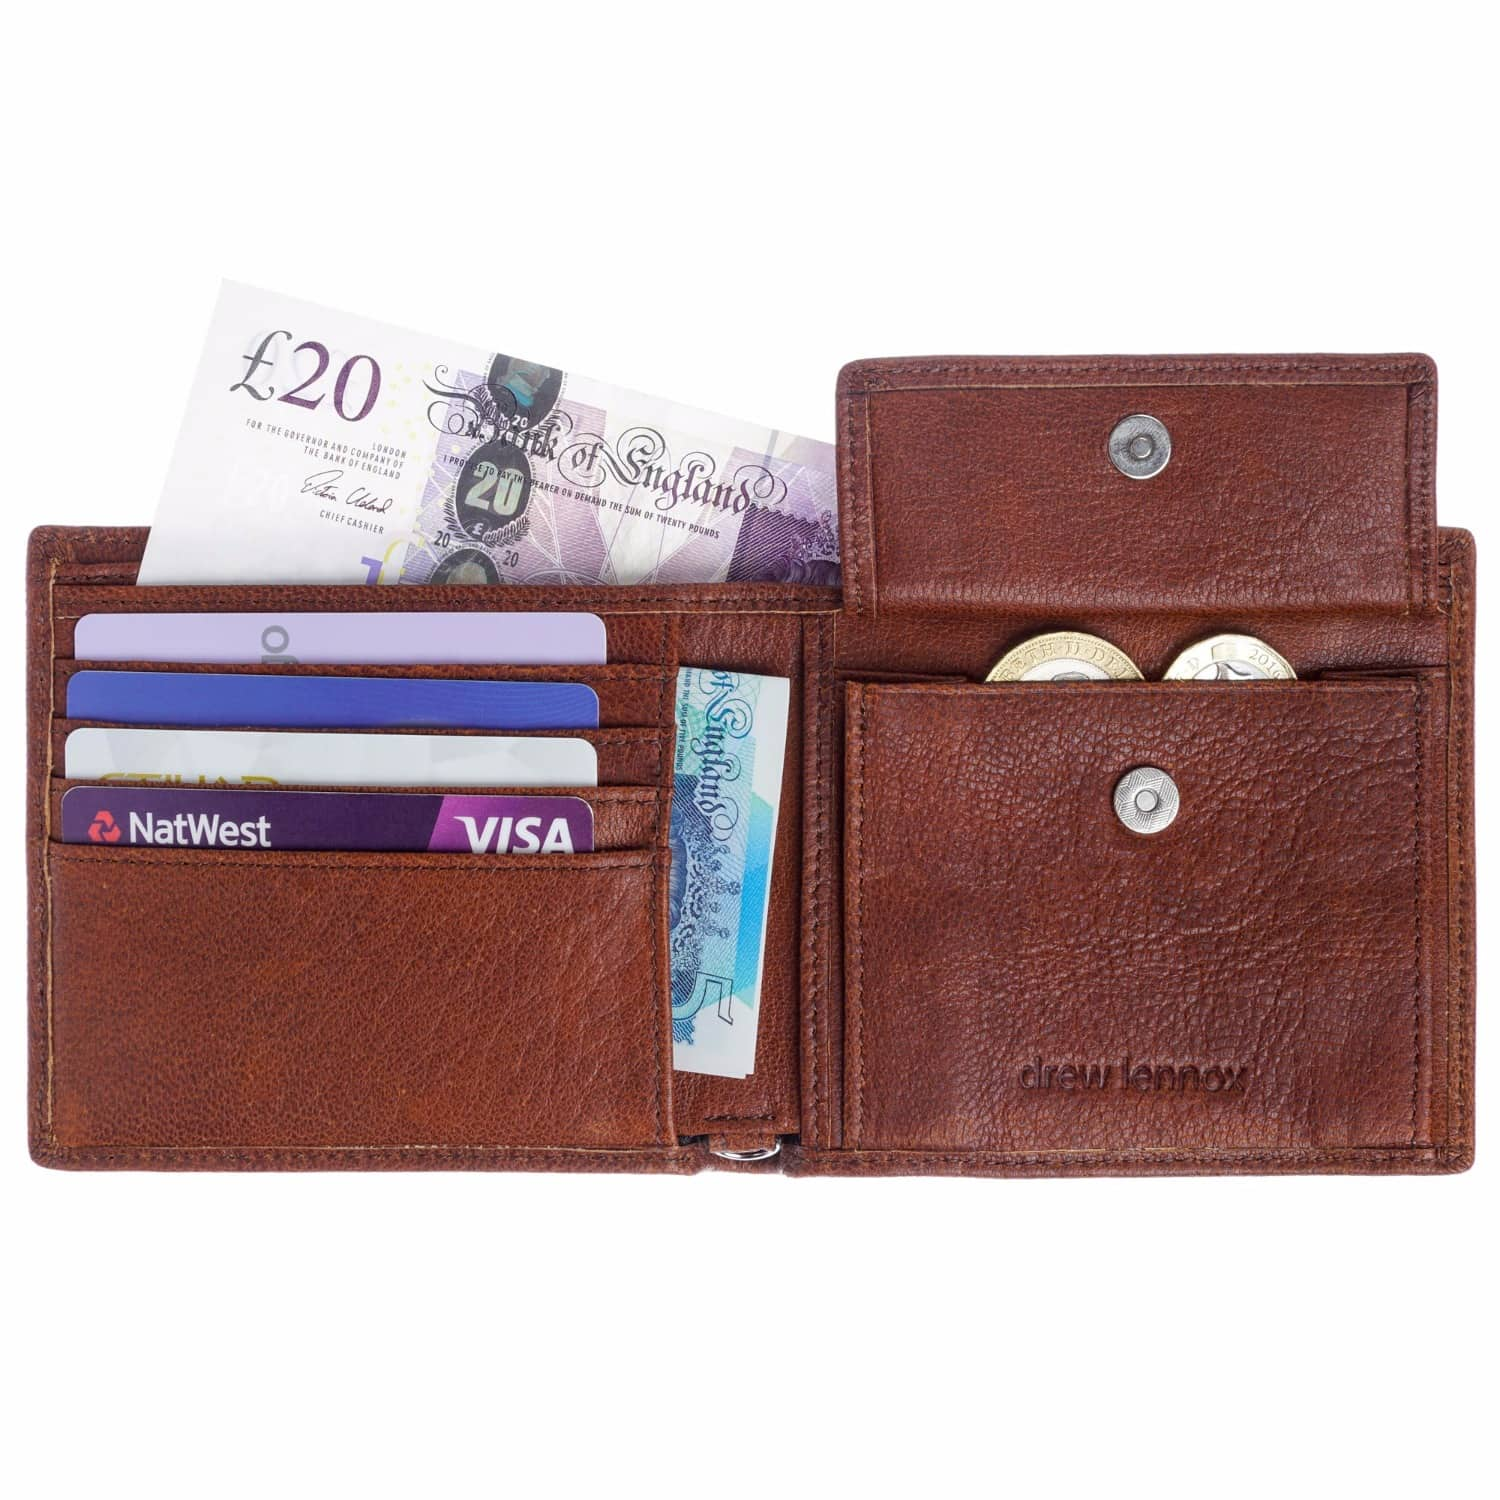 24667d7bc2 Luxury English Leather Mens Billfold Wallet In Rustic Brown by Drew Lennox